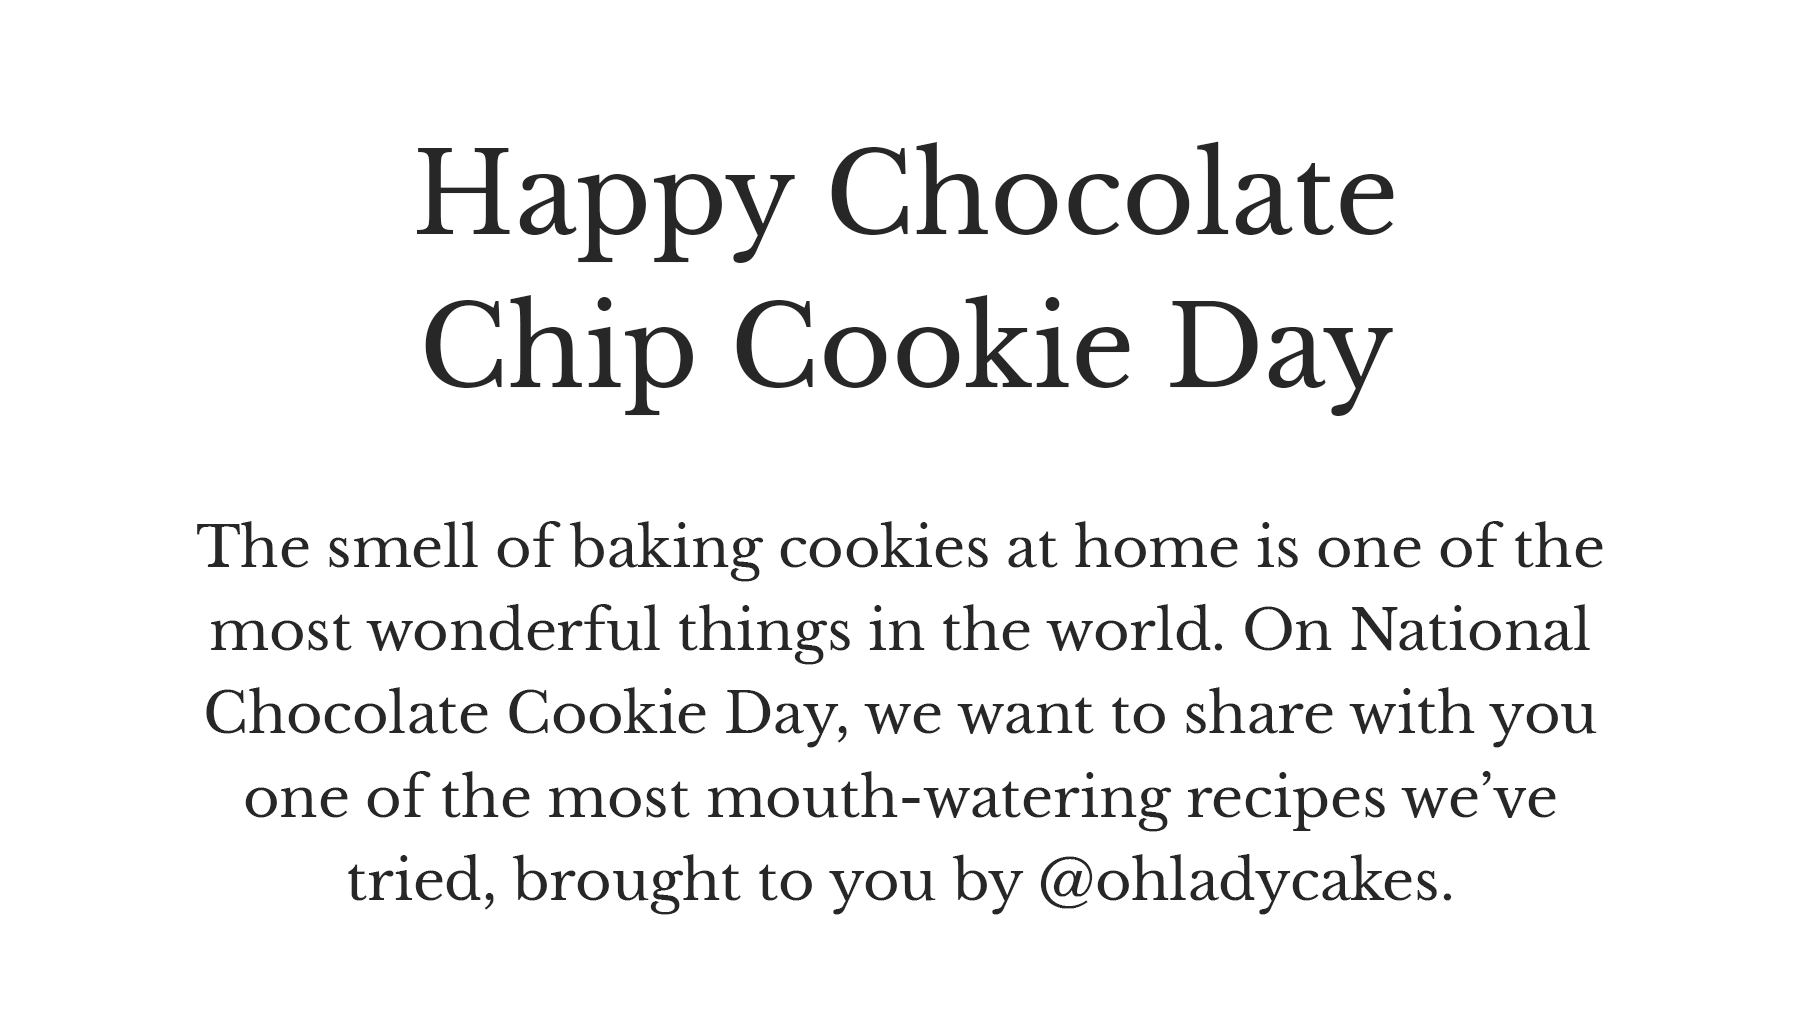 Happy Chocolate Chip Cookie Day